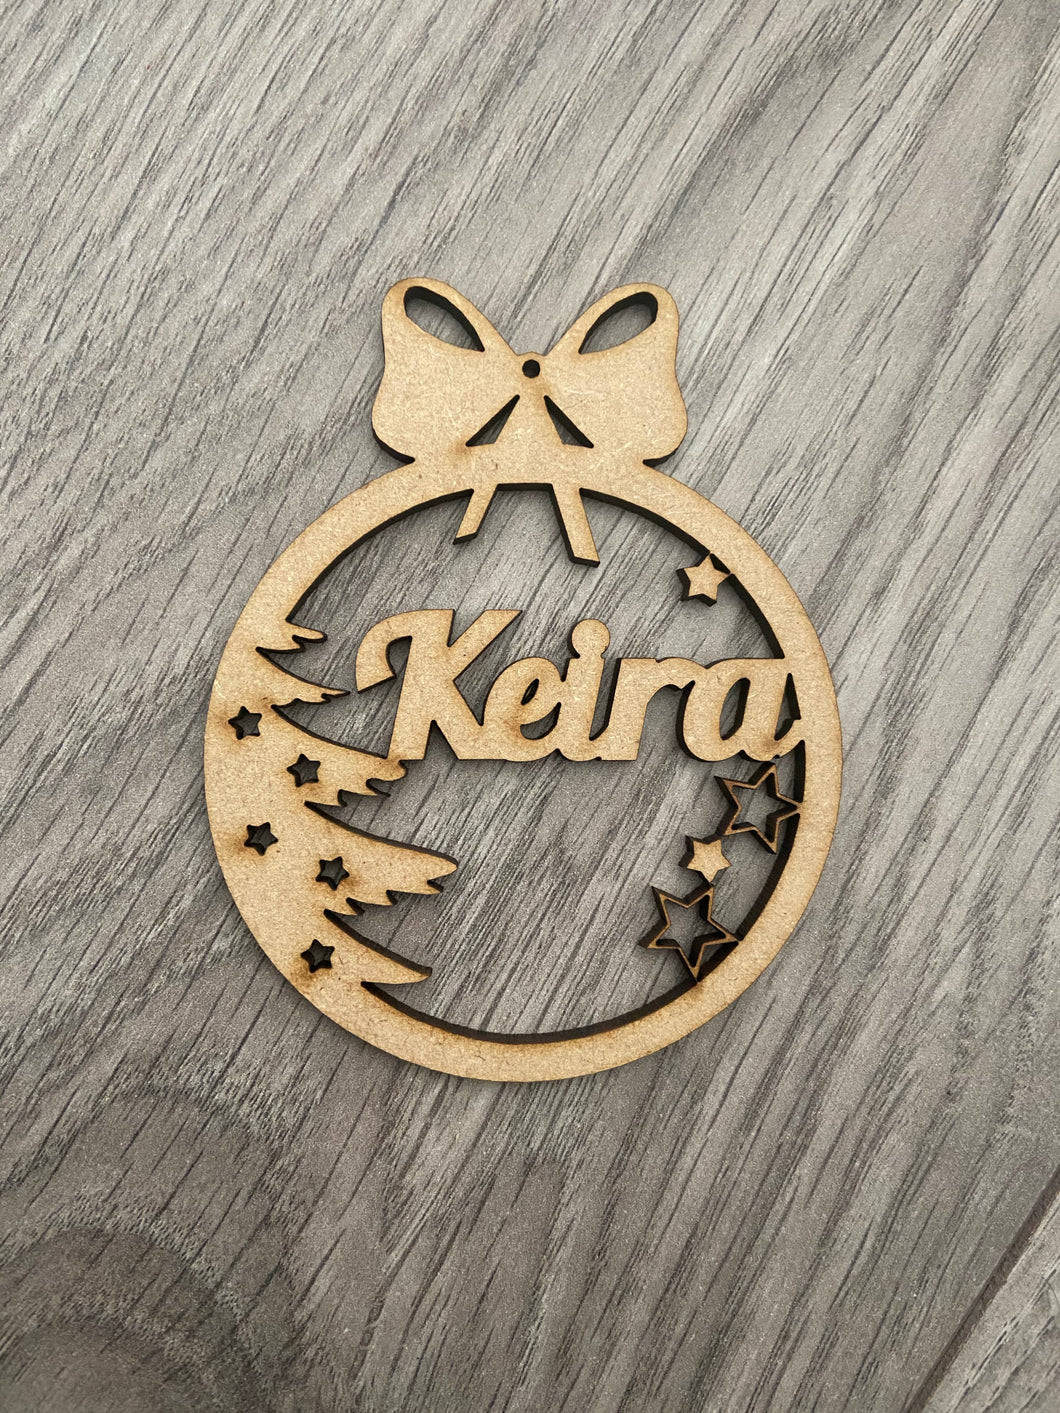 Wooden bauble tree decoration - Laser LLama Designs Ltd